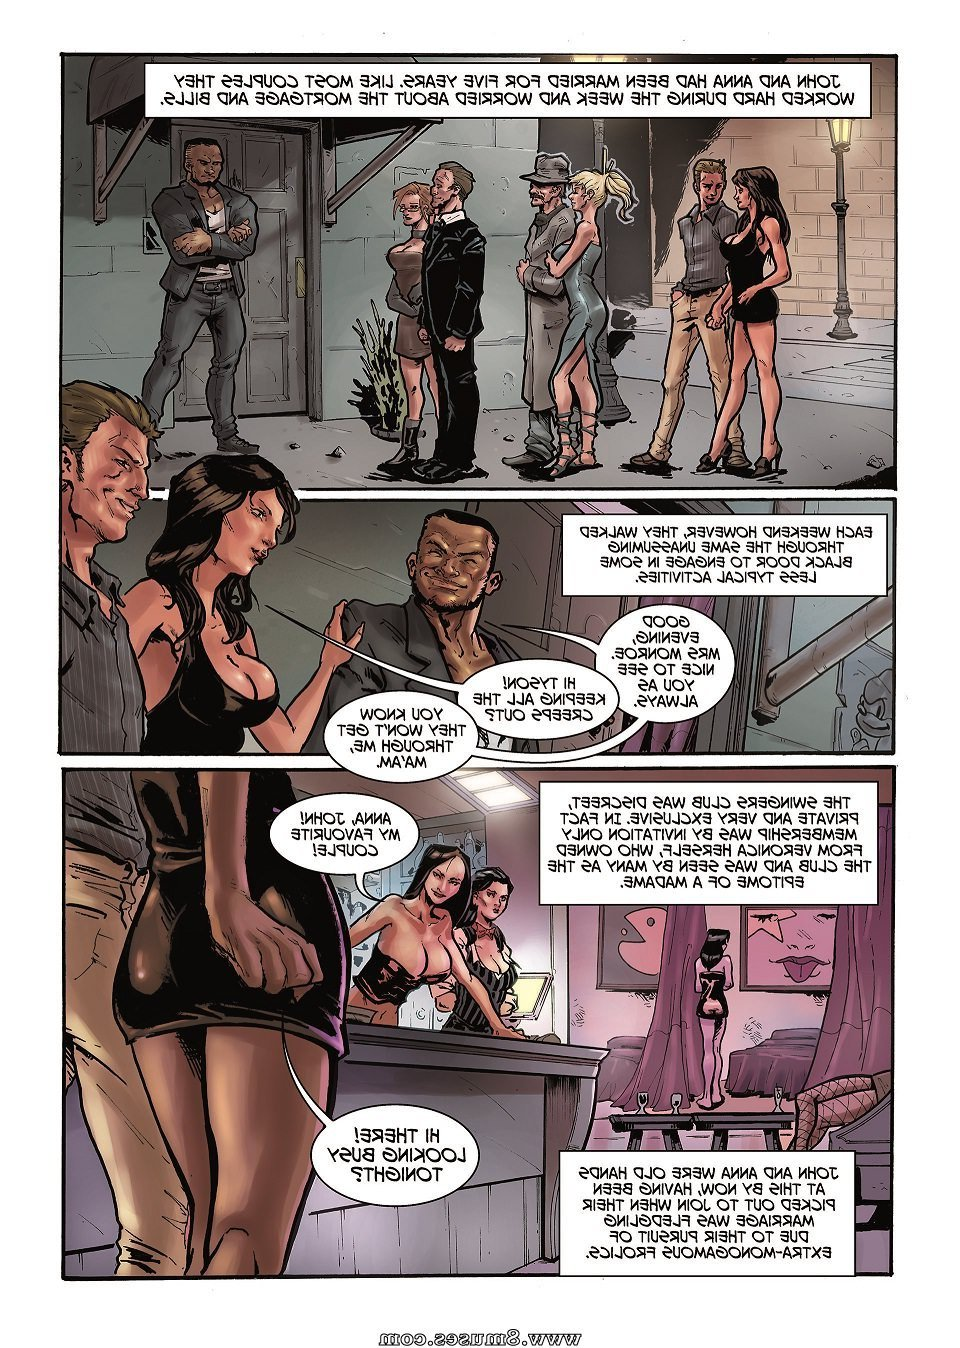 Giantess-Fan-Comics/Size-Swingers/Issue-1 Size_Swingers_-_Issue_1_3.jpg